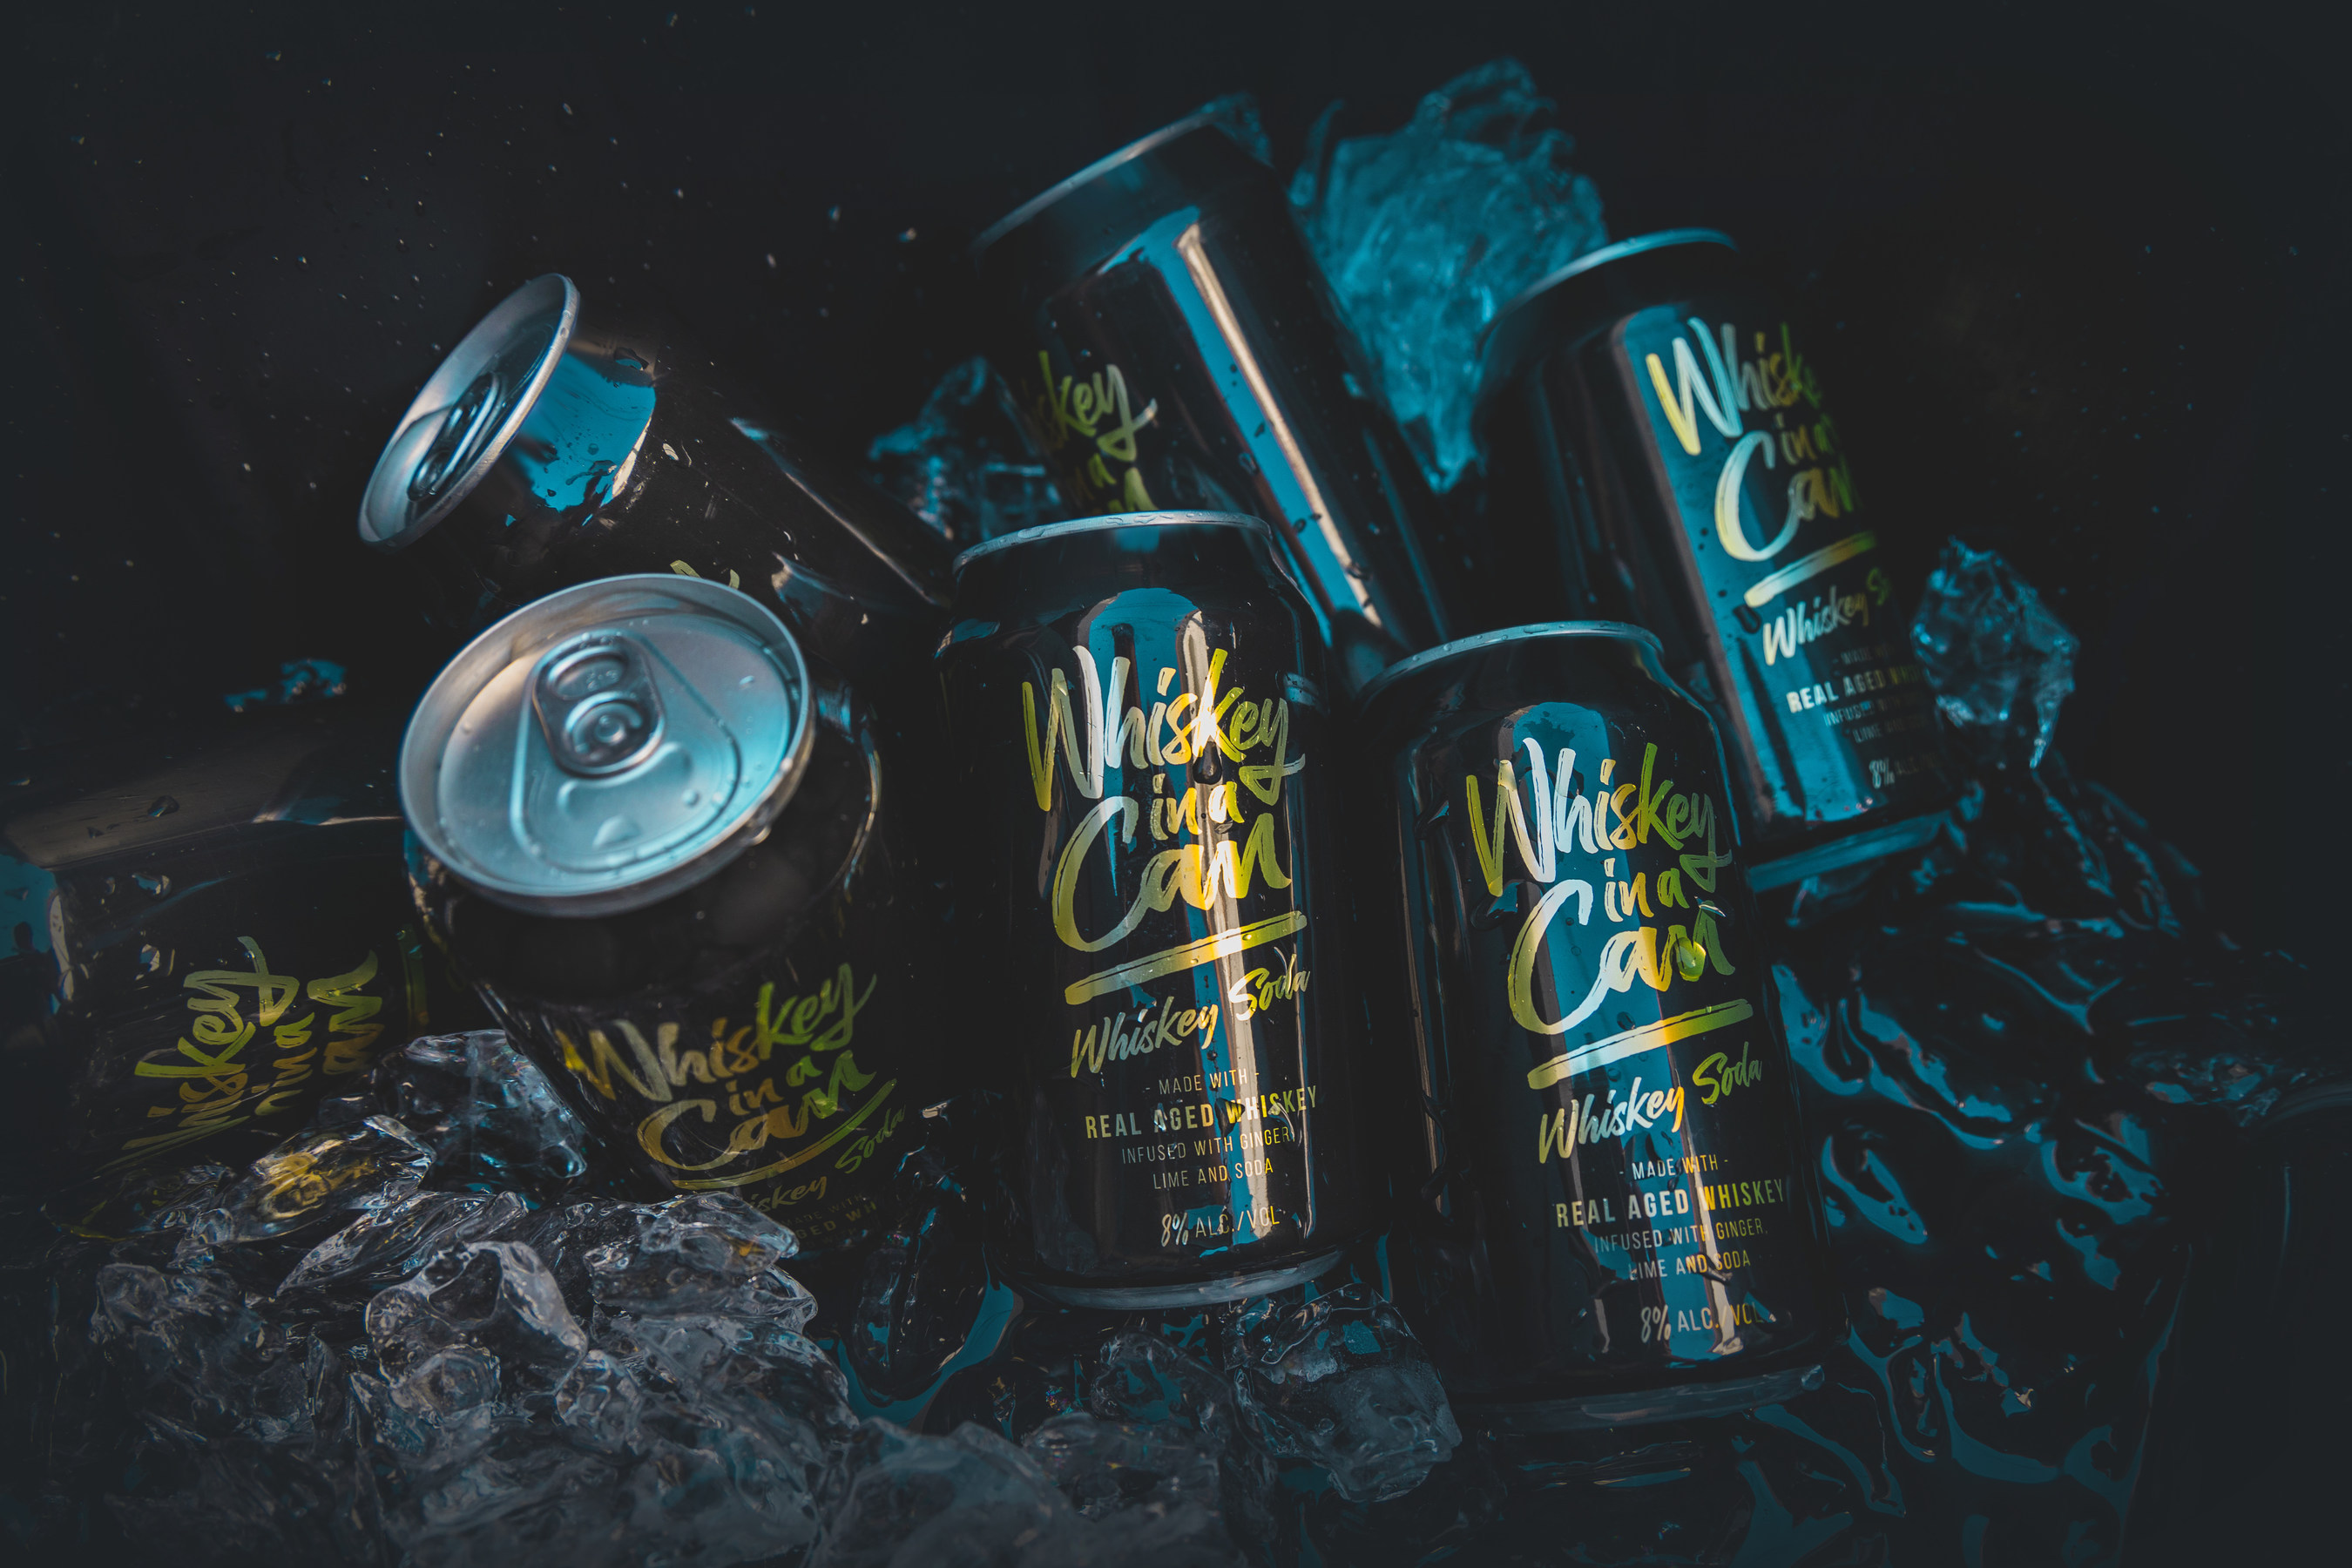 A Kickstarter Campaign By Whiskey In A Can